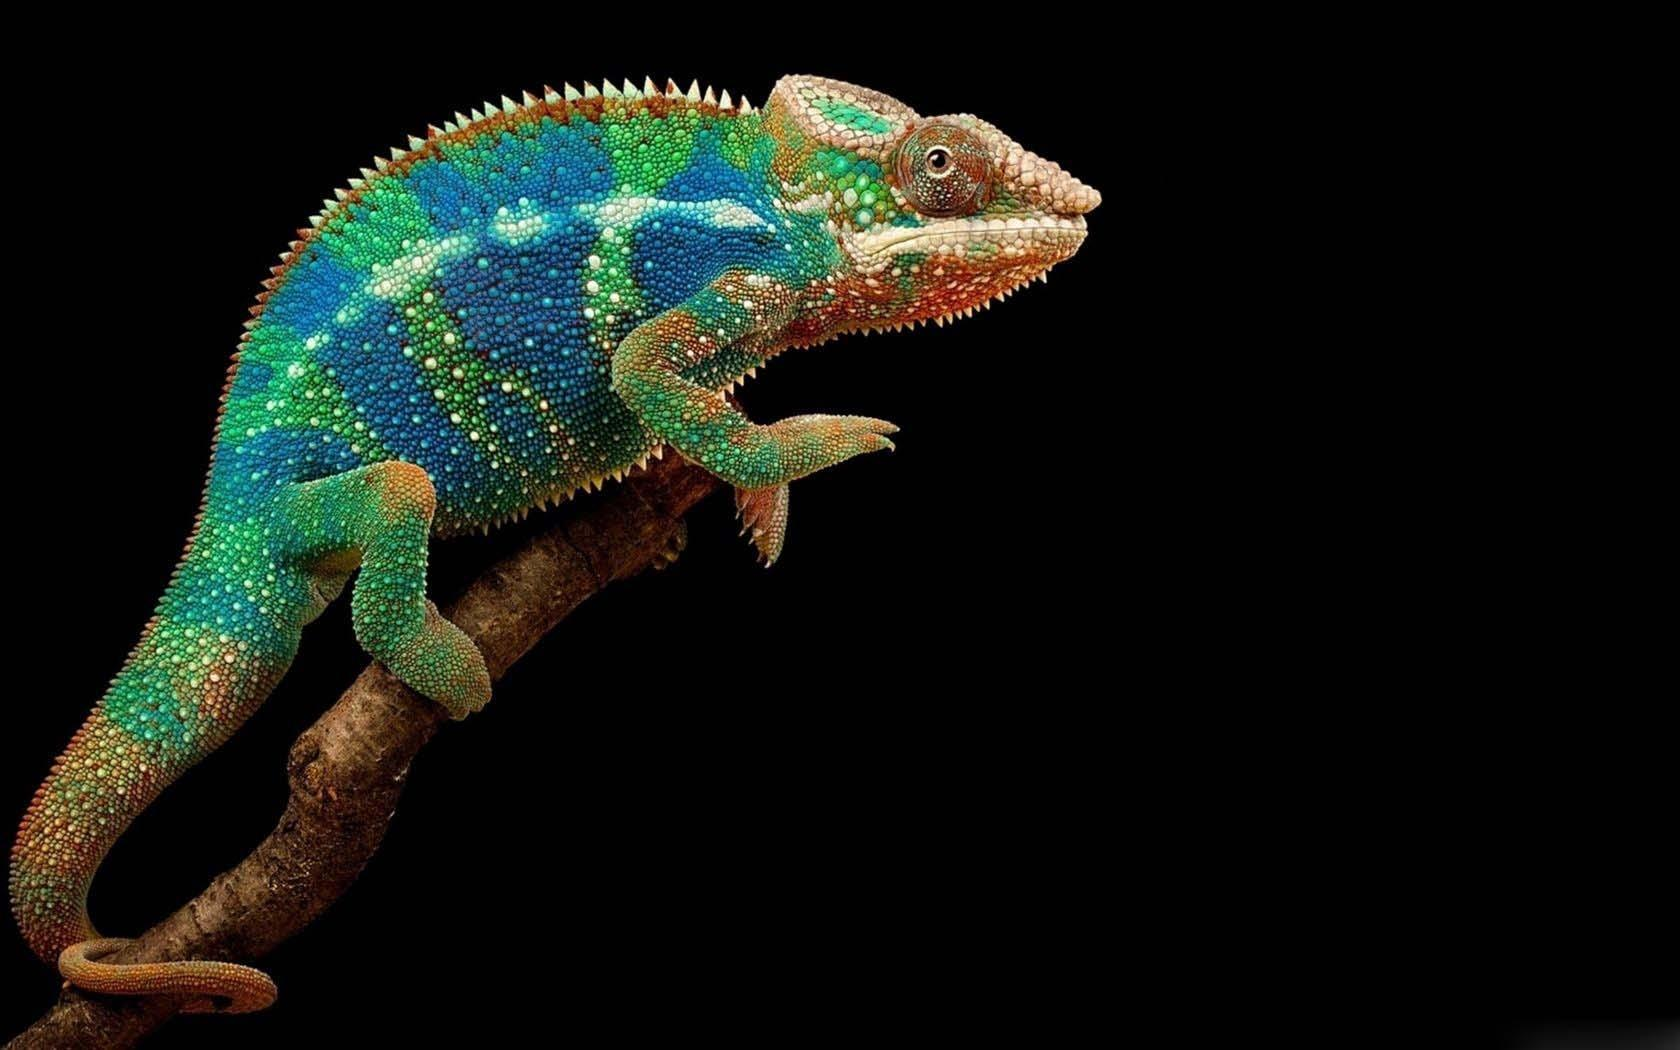 Panther Chameleon wallpapers HD